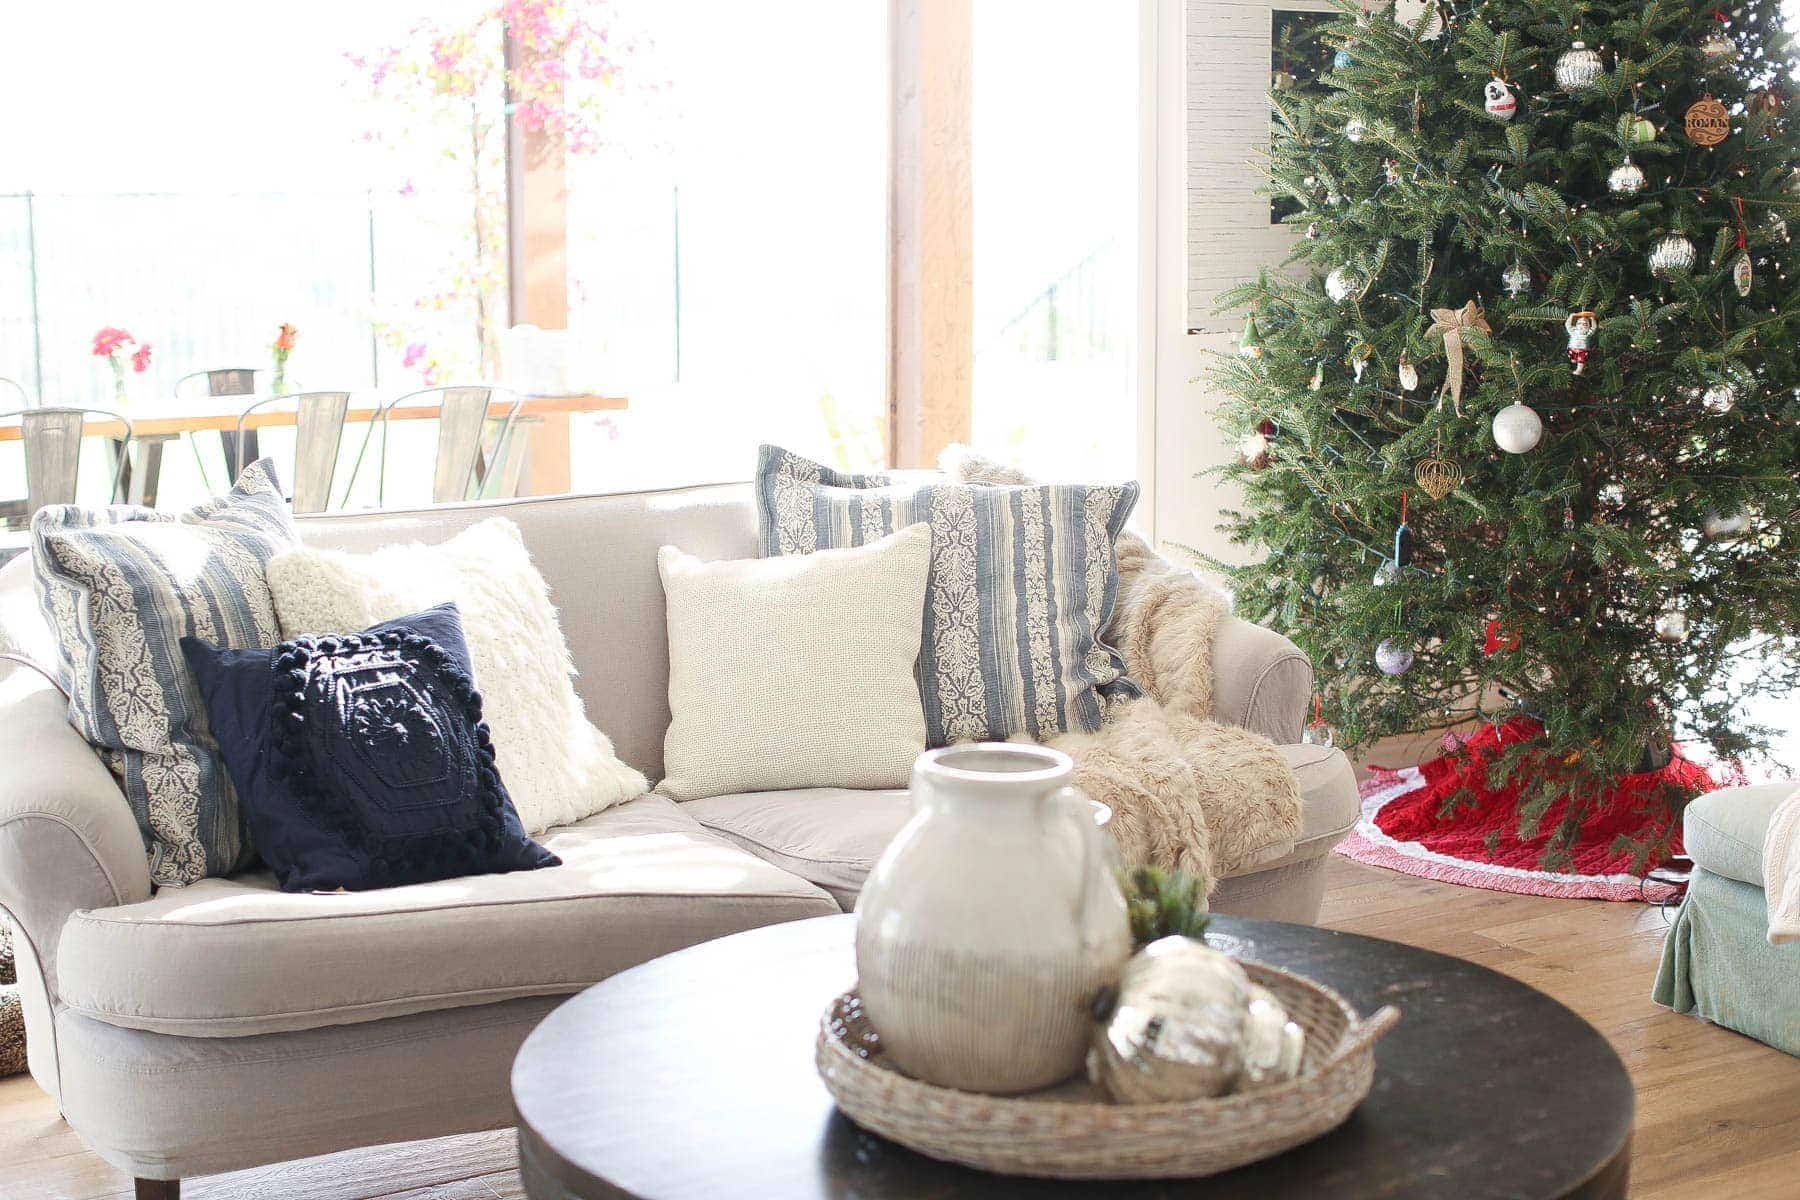 Festive pillows to tie in with Holiday decor